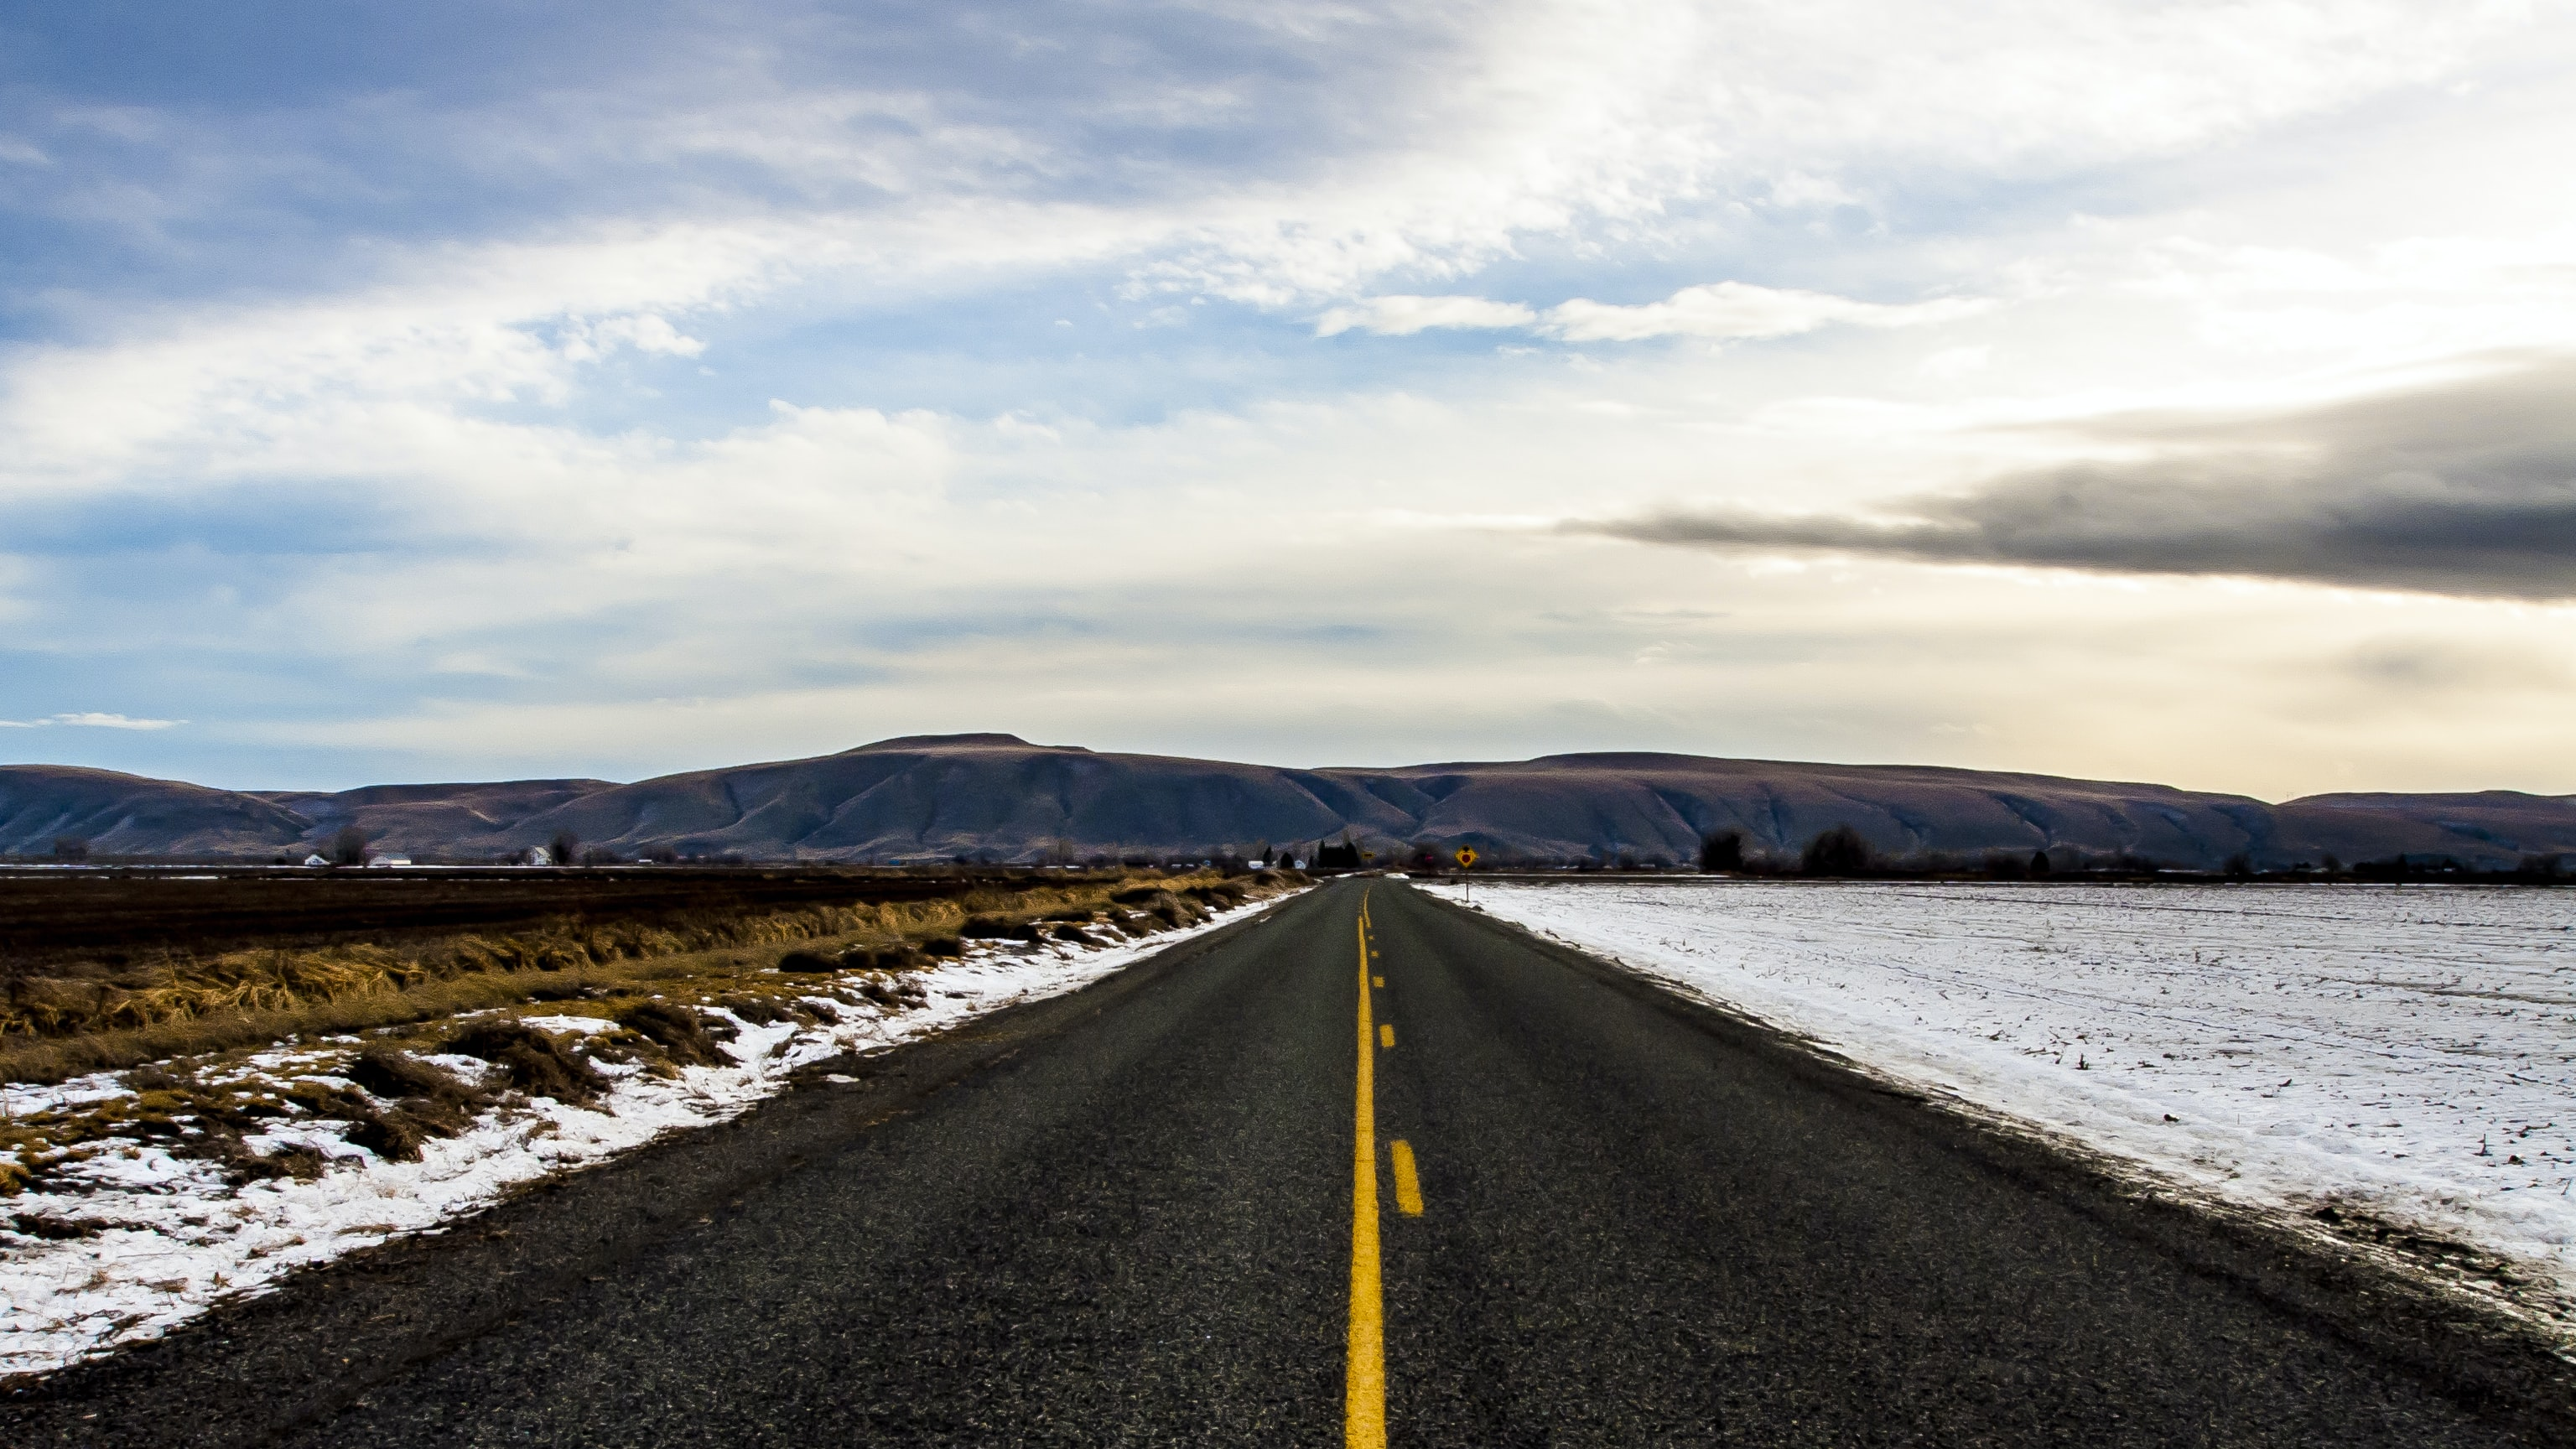 A blacktop road approaches blue mountains and sits between flatland lightly covered in snow